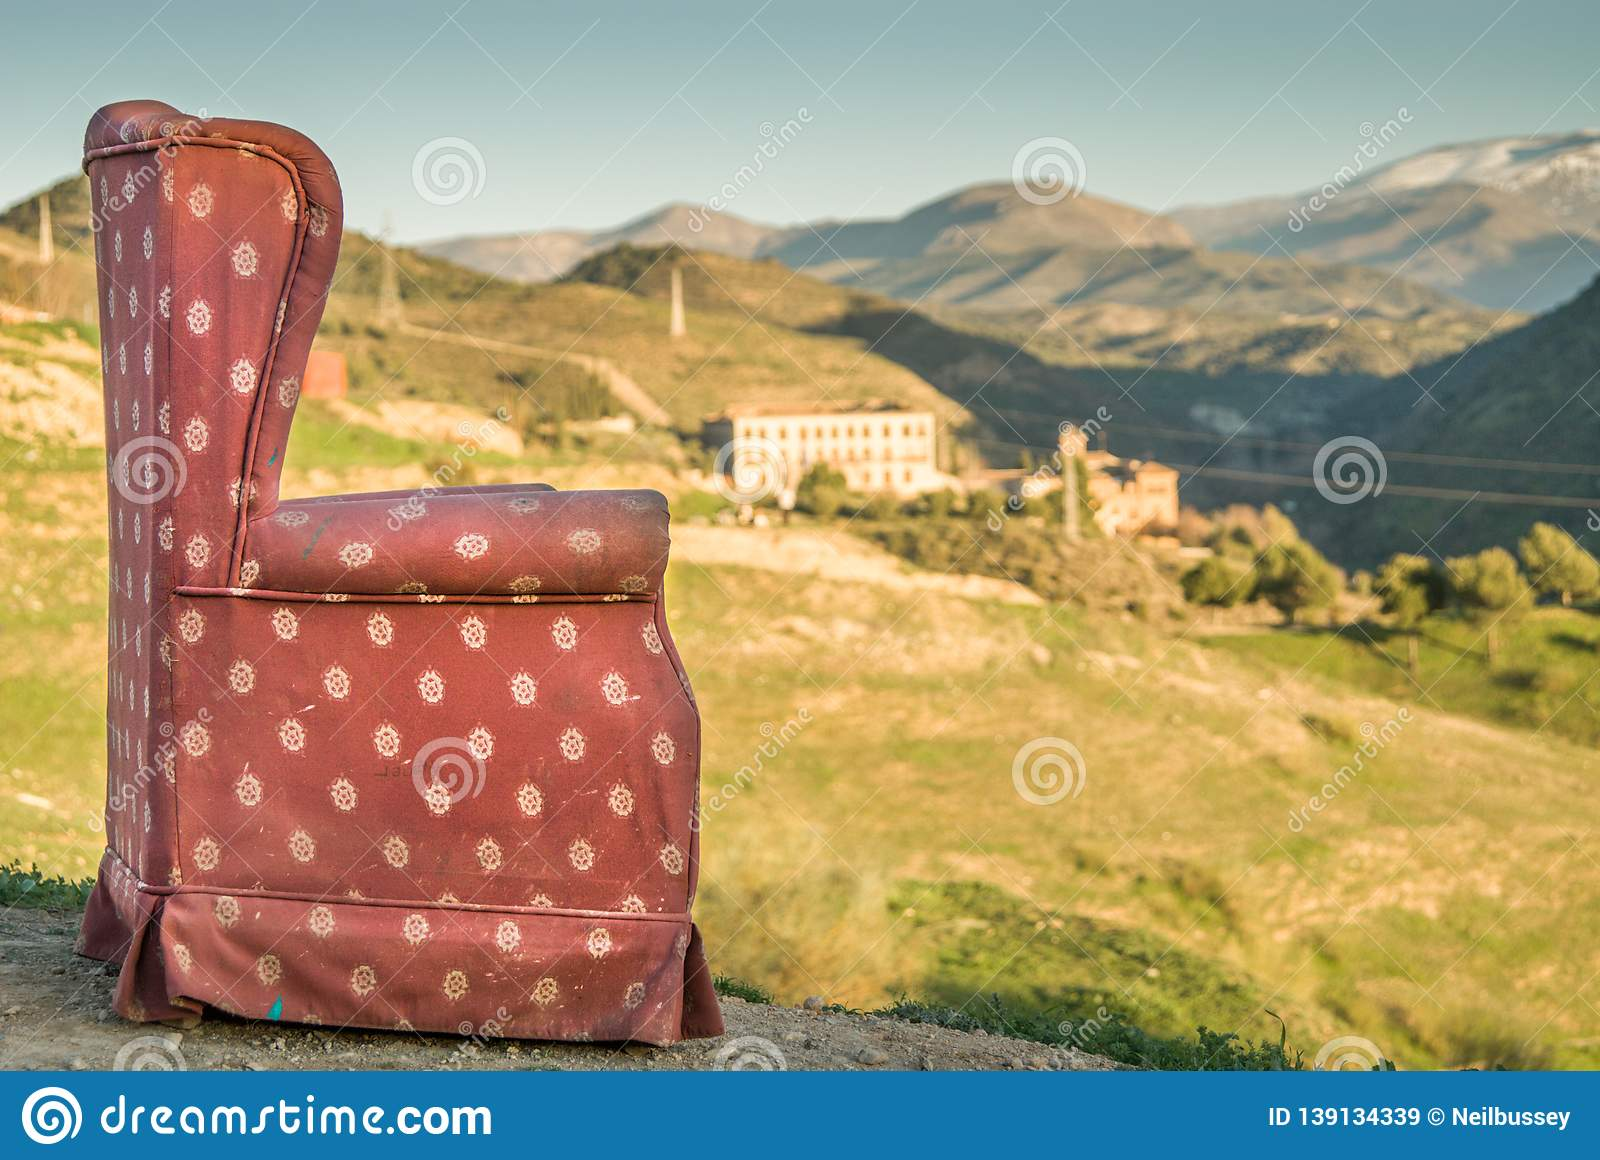 Red arm chair perched on hillside,Sacromonte caves,Granada,Andalucia,Spain